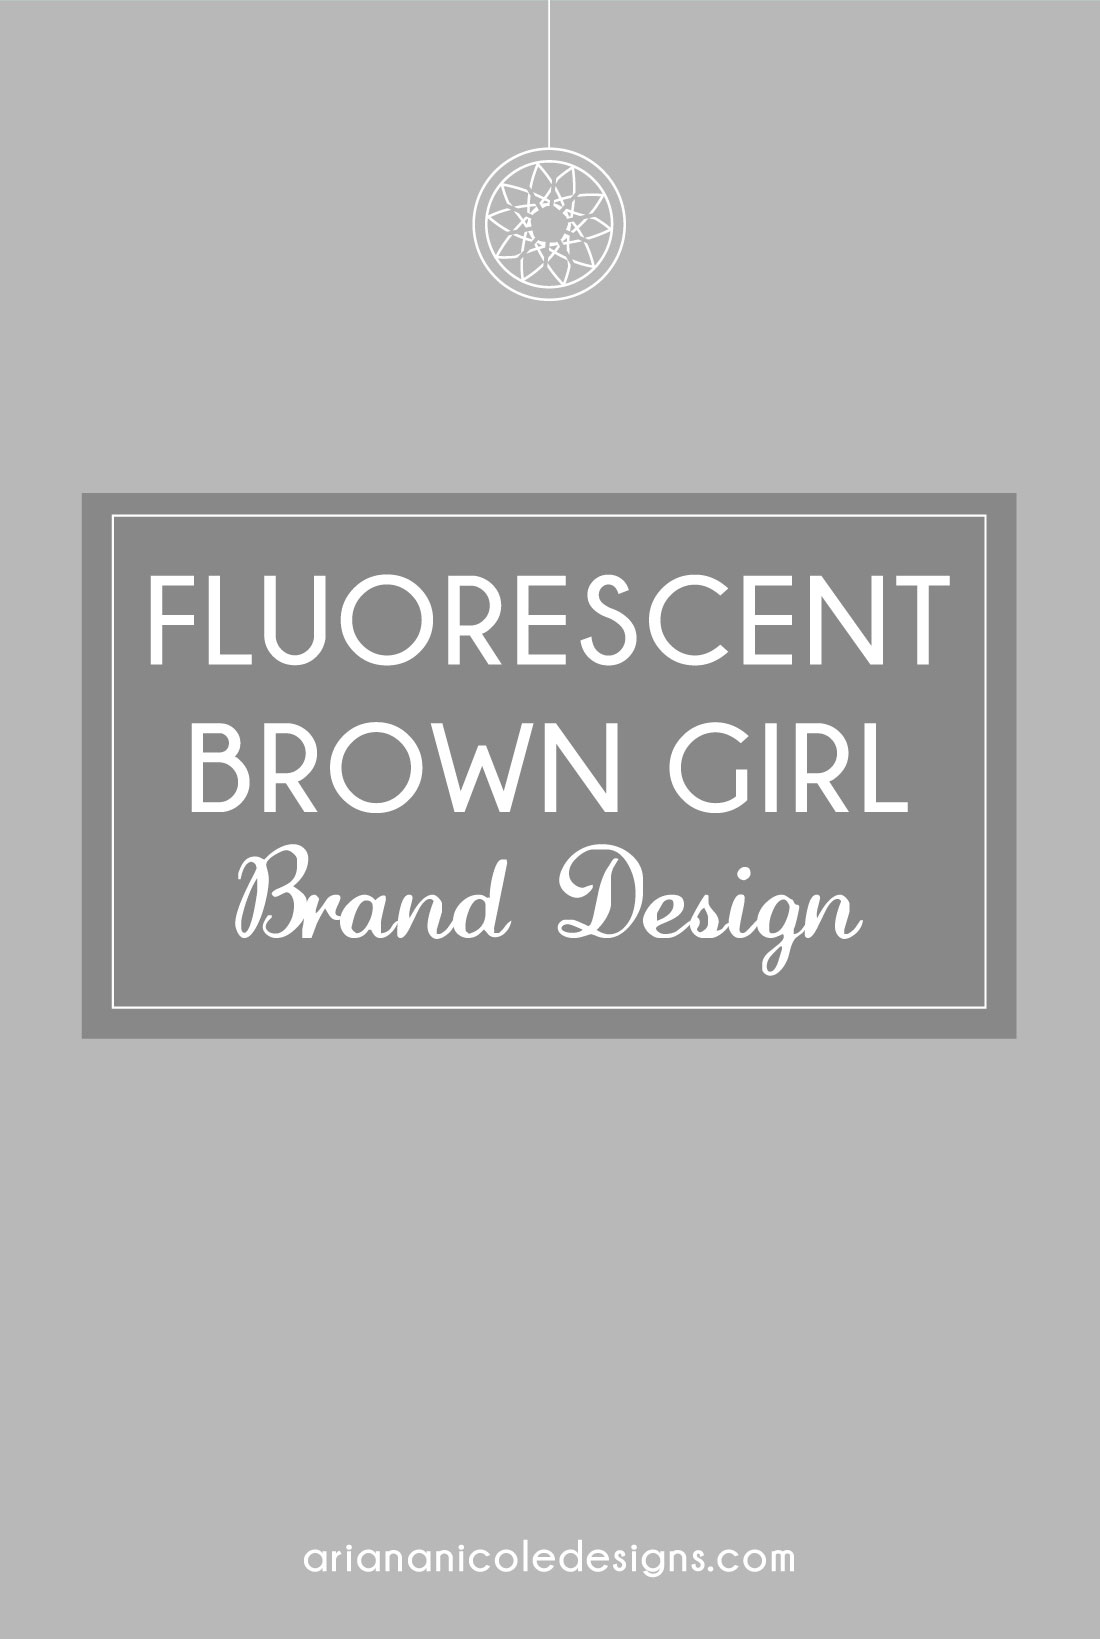 Fluorescent_Brown_Girl_Brand_Design_Ariana_Nicole